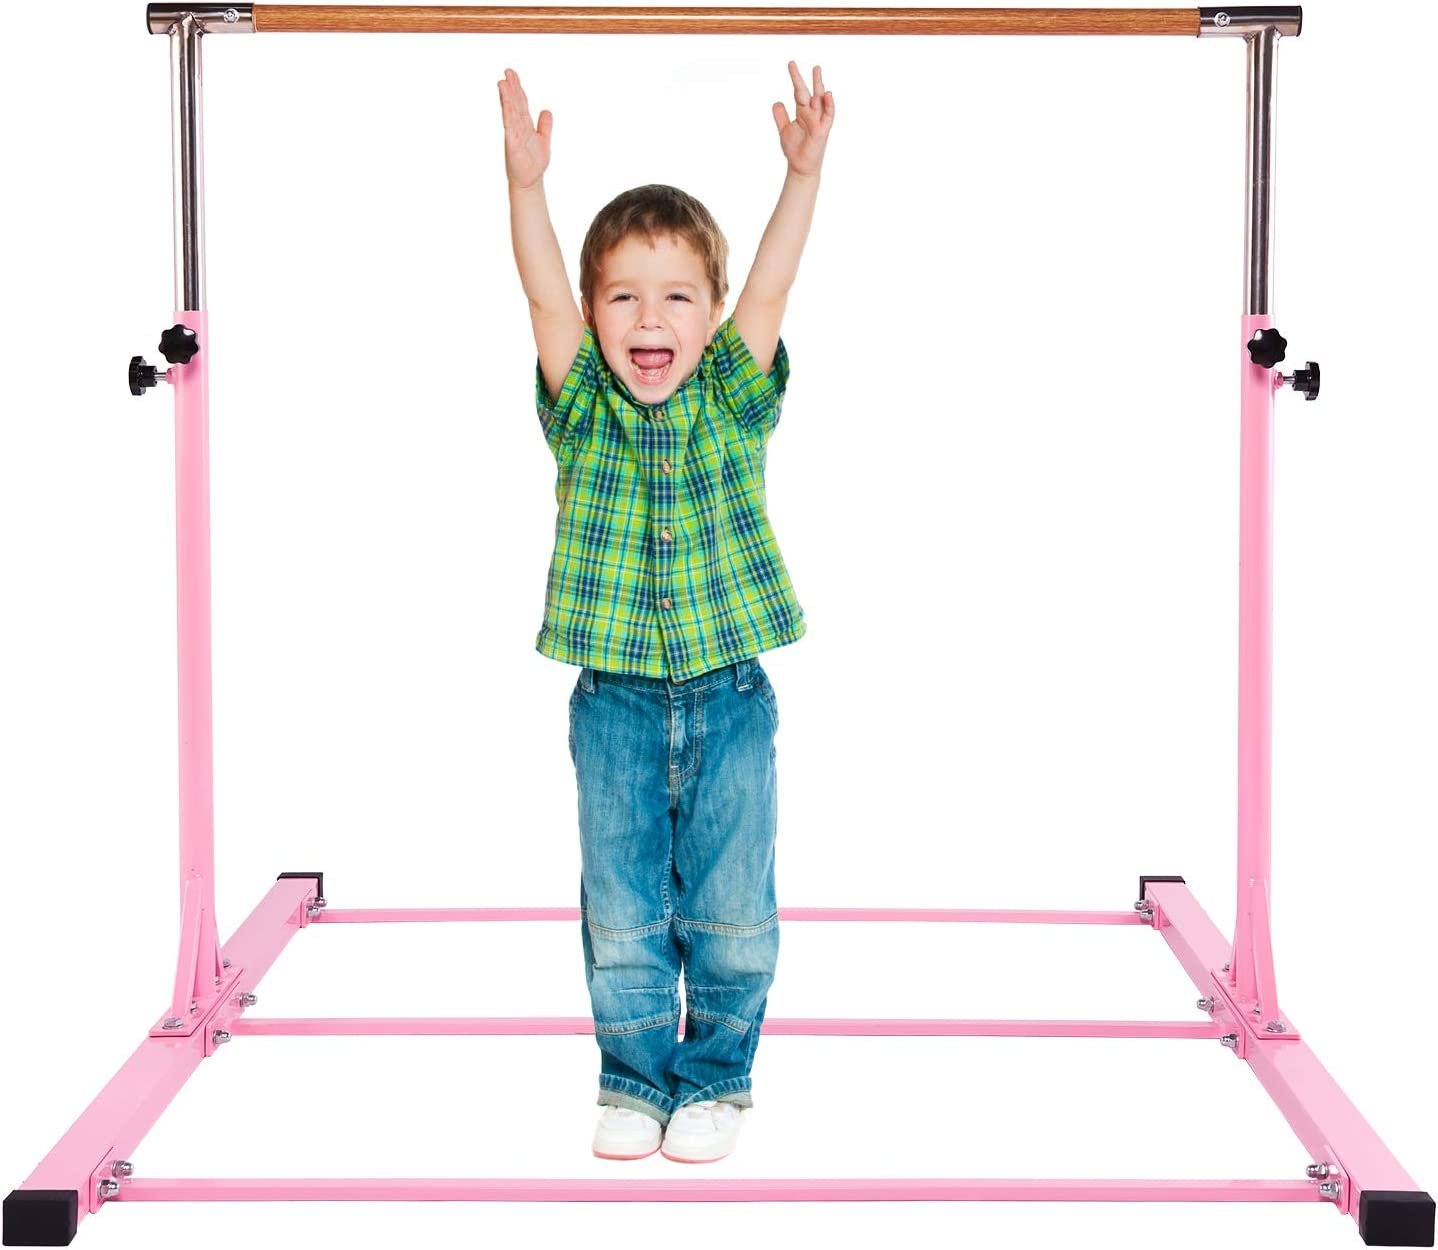 DONGFANG Gymnastics Bar for Kids,Junior Training Horizontal Bar Height Adjustable,Kip Bar Ideal for Gymnasts/Home/Floor/Practice/Tumbling(Pink/Blue)